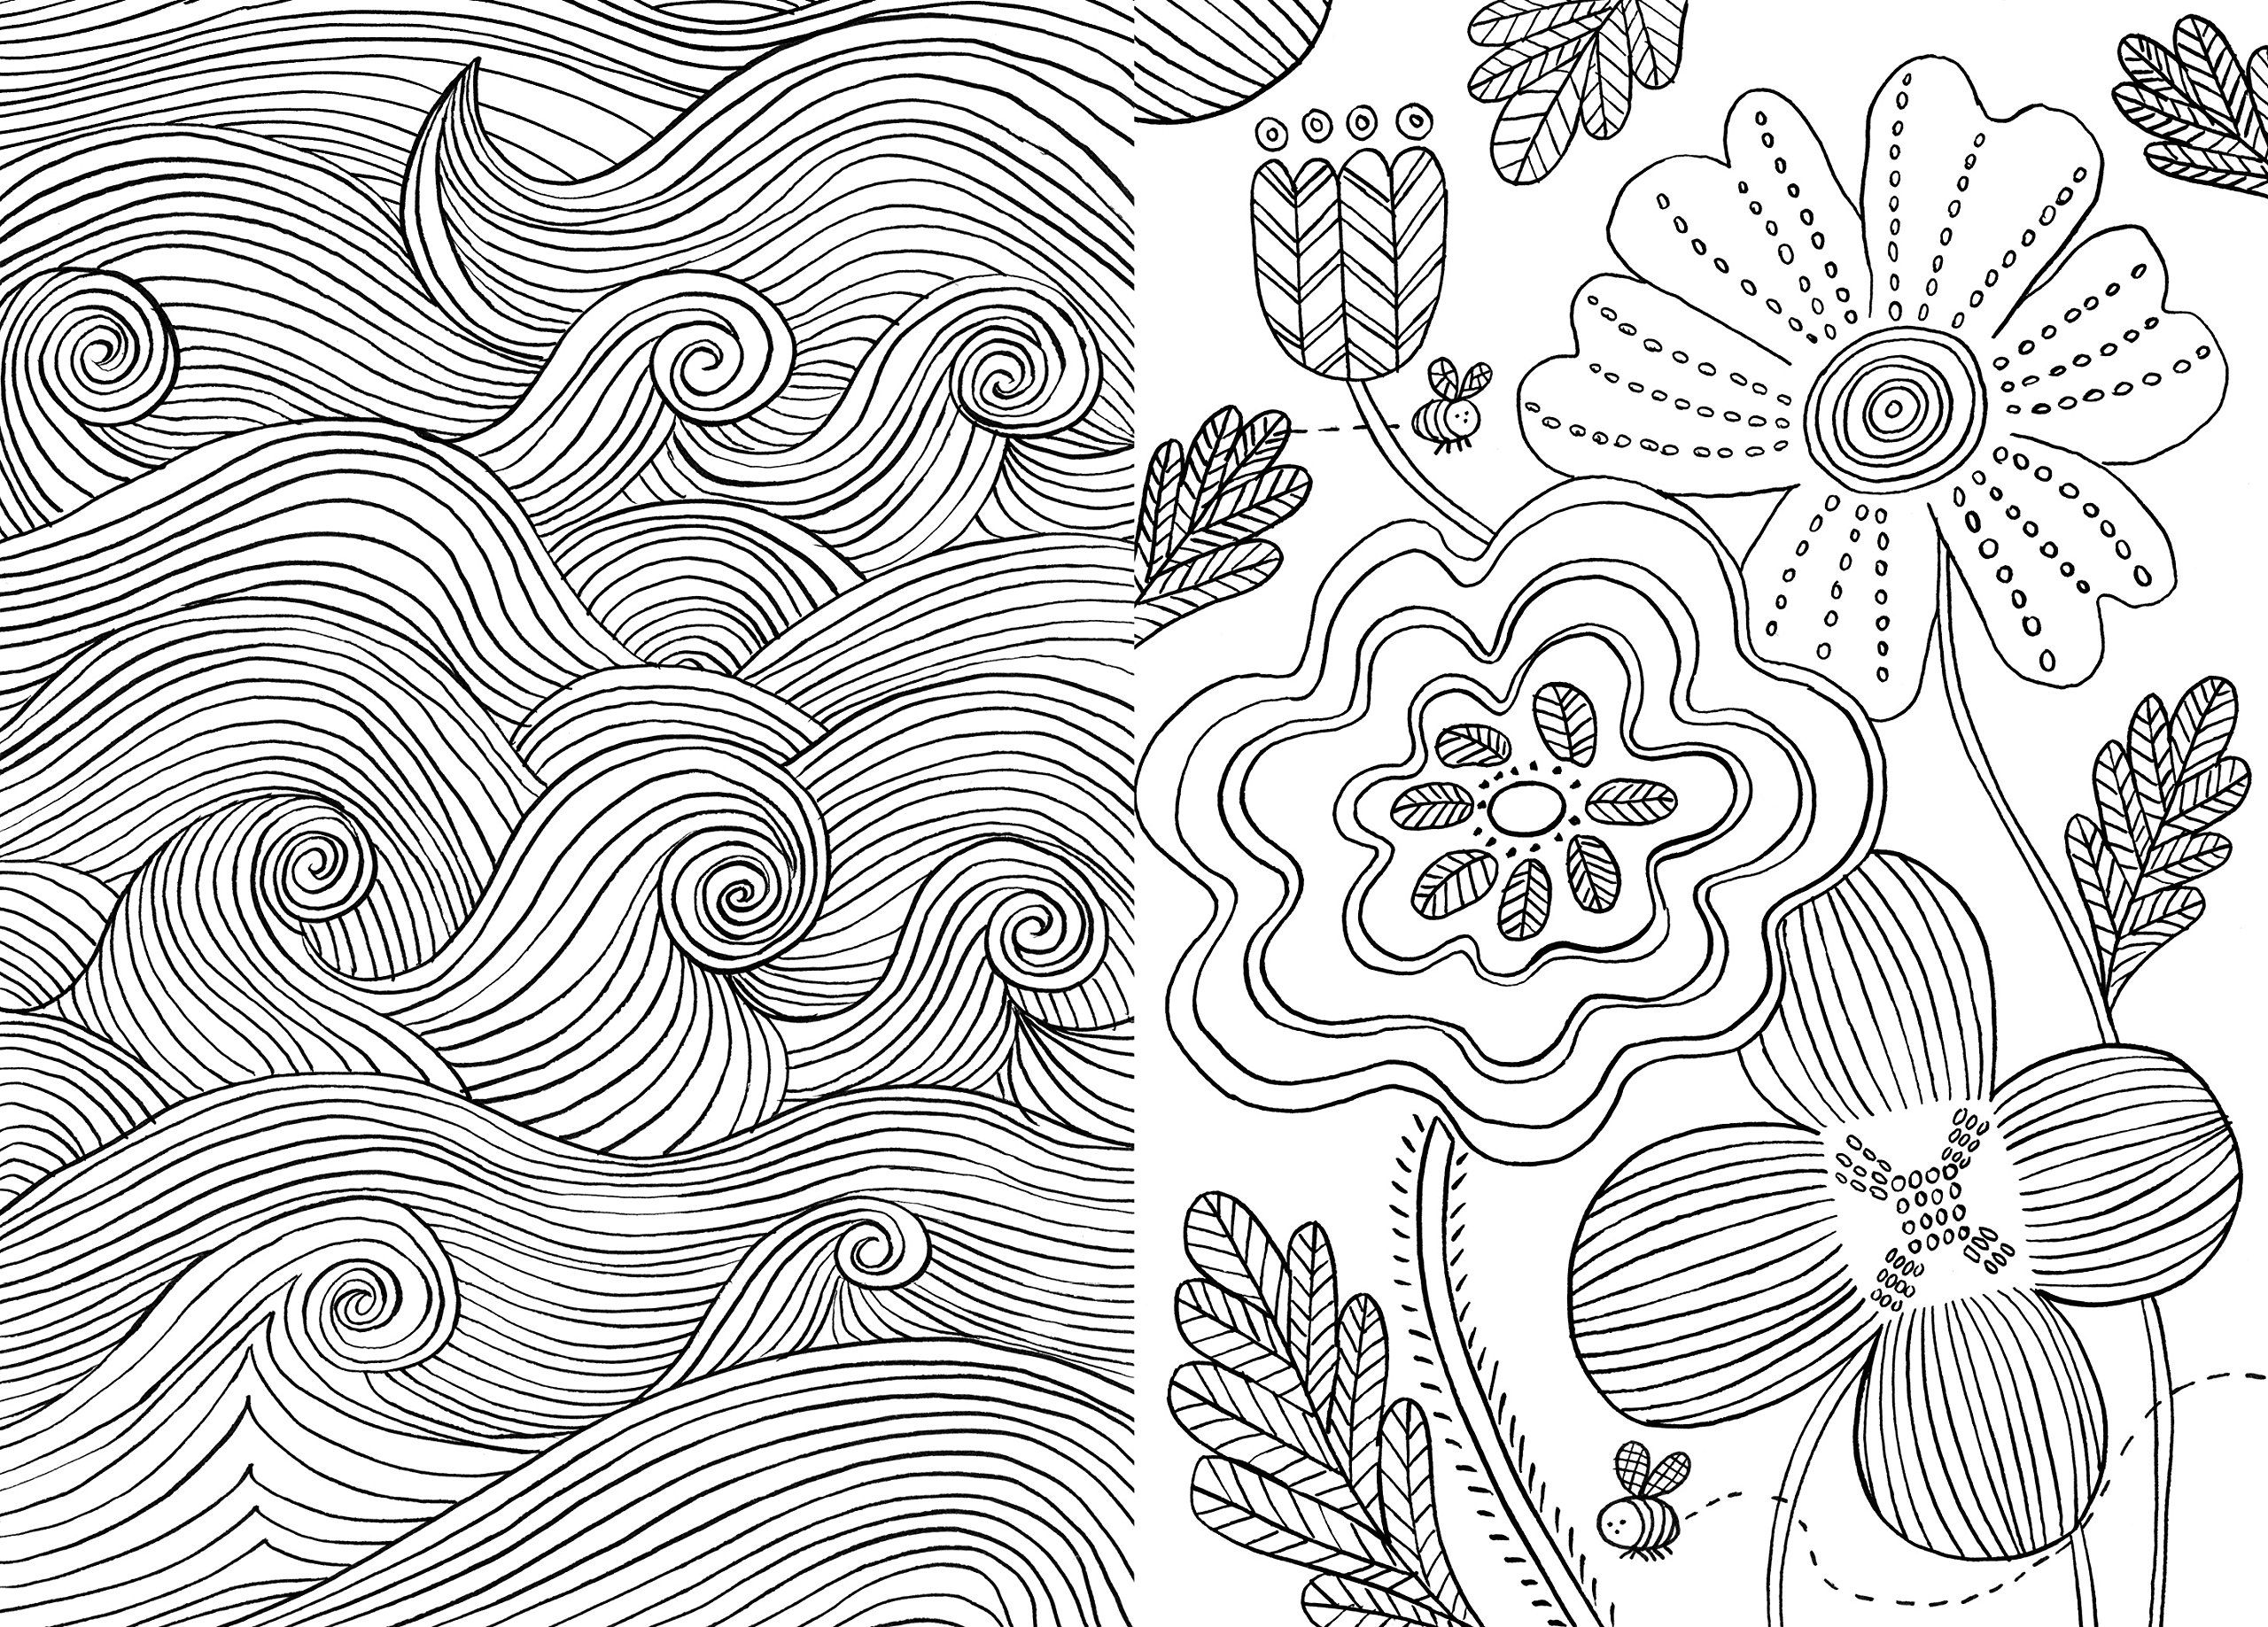 The Mindfulness Colouring Book Anti Stress Art Therapy For Busy People Amazon In E Art Therapy Coloring Book Anti Stress Coloring Book Mindfulness Colouring